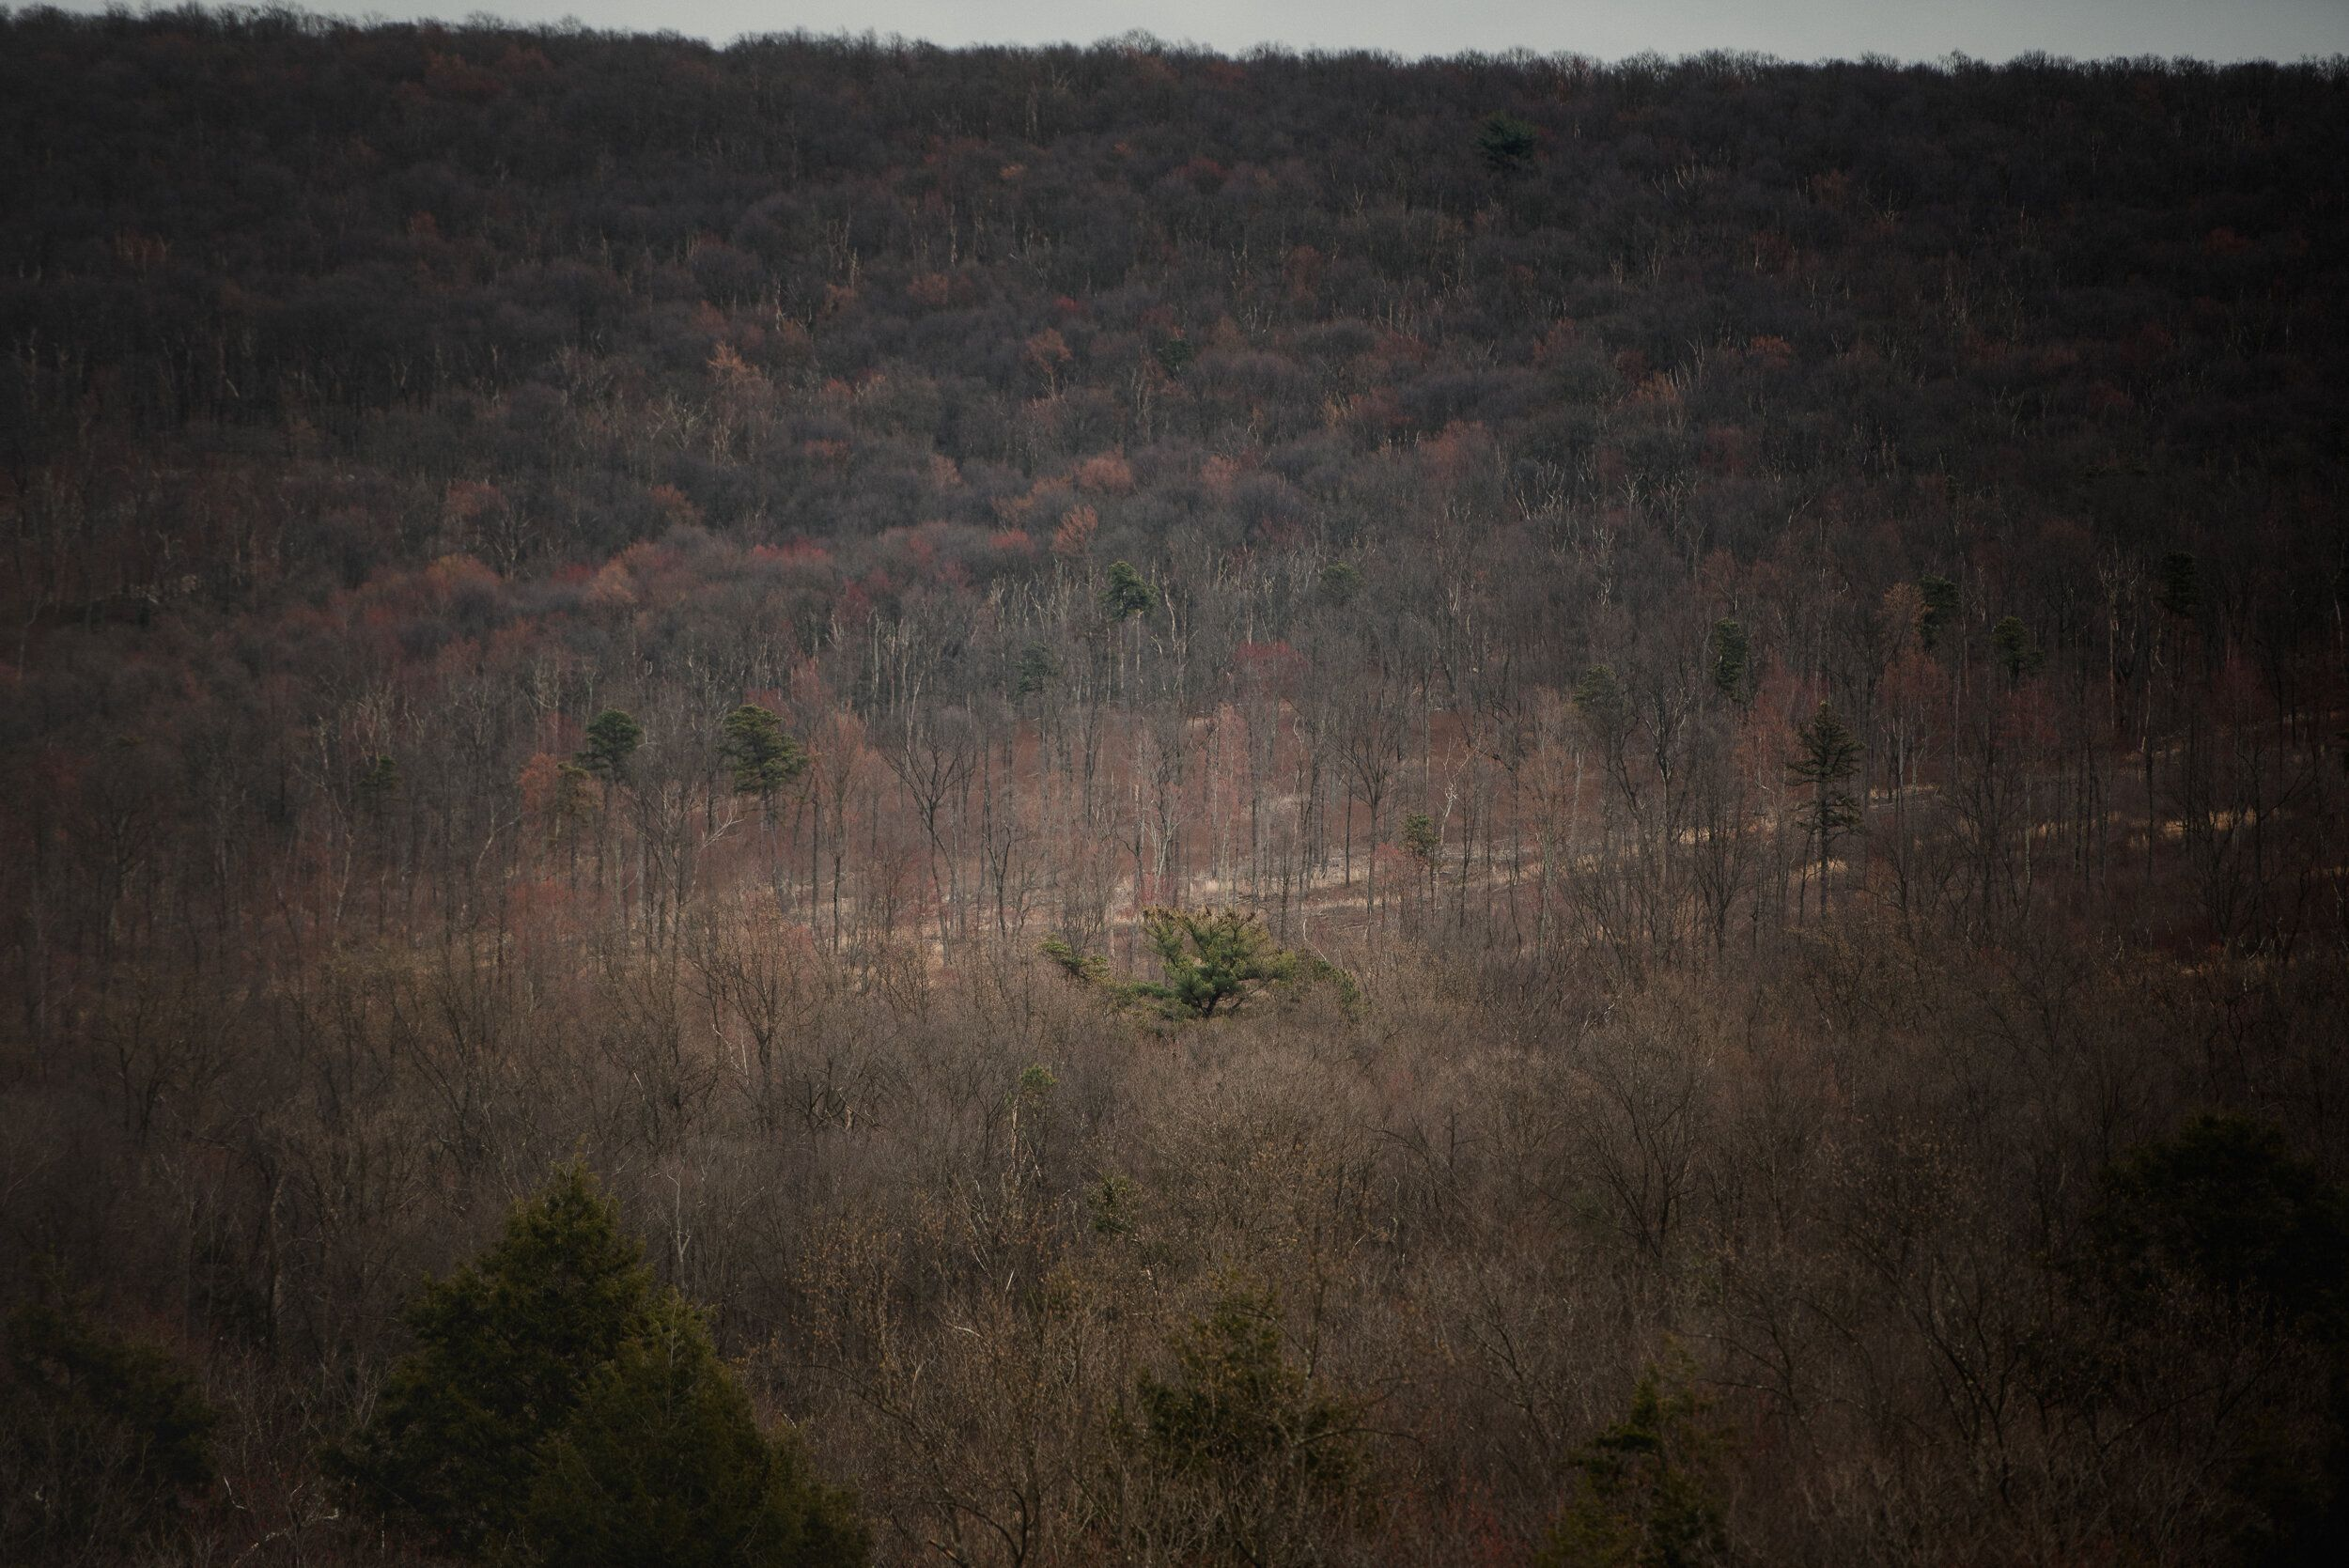 Invasive species such as ferns and stilt grass take over forest ground, which prevents new trees from growing in Auburn, Penn